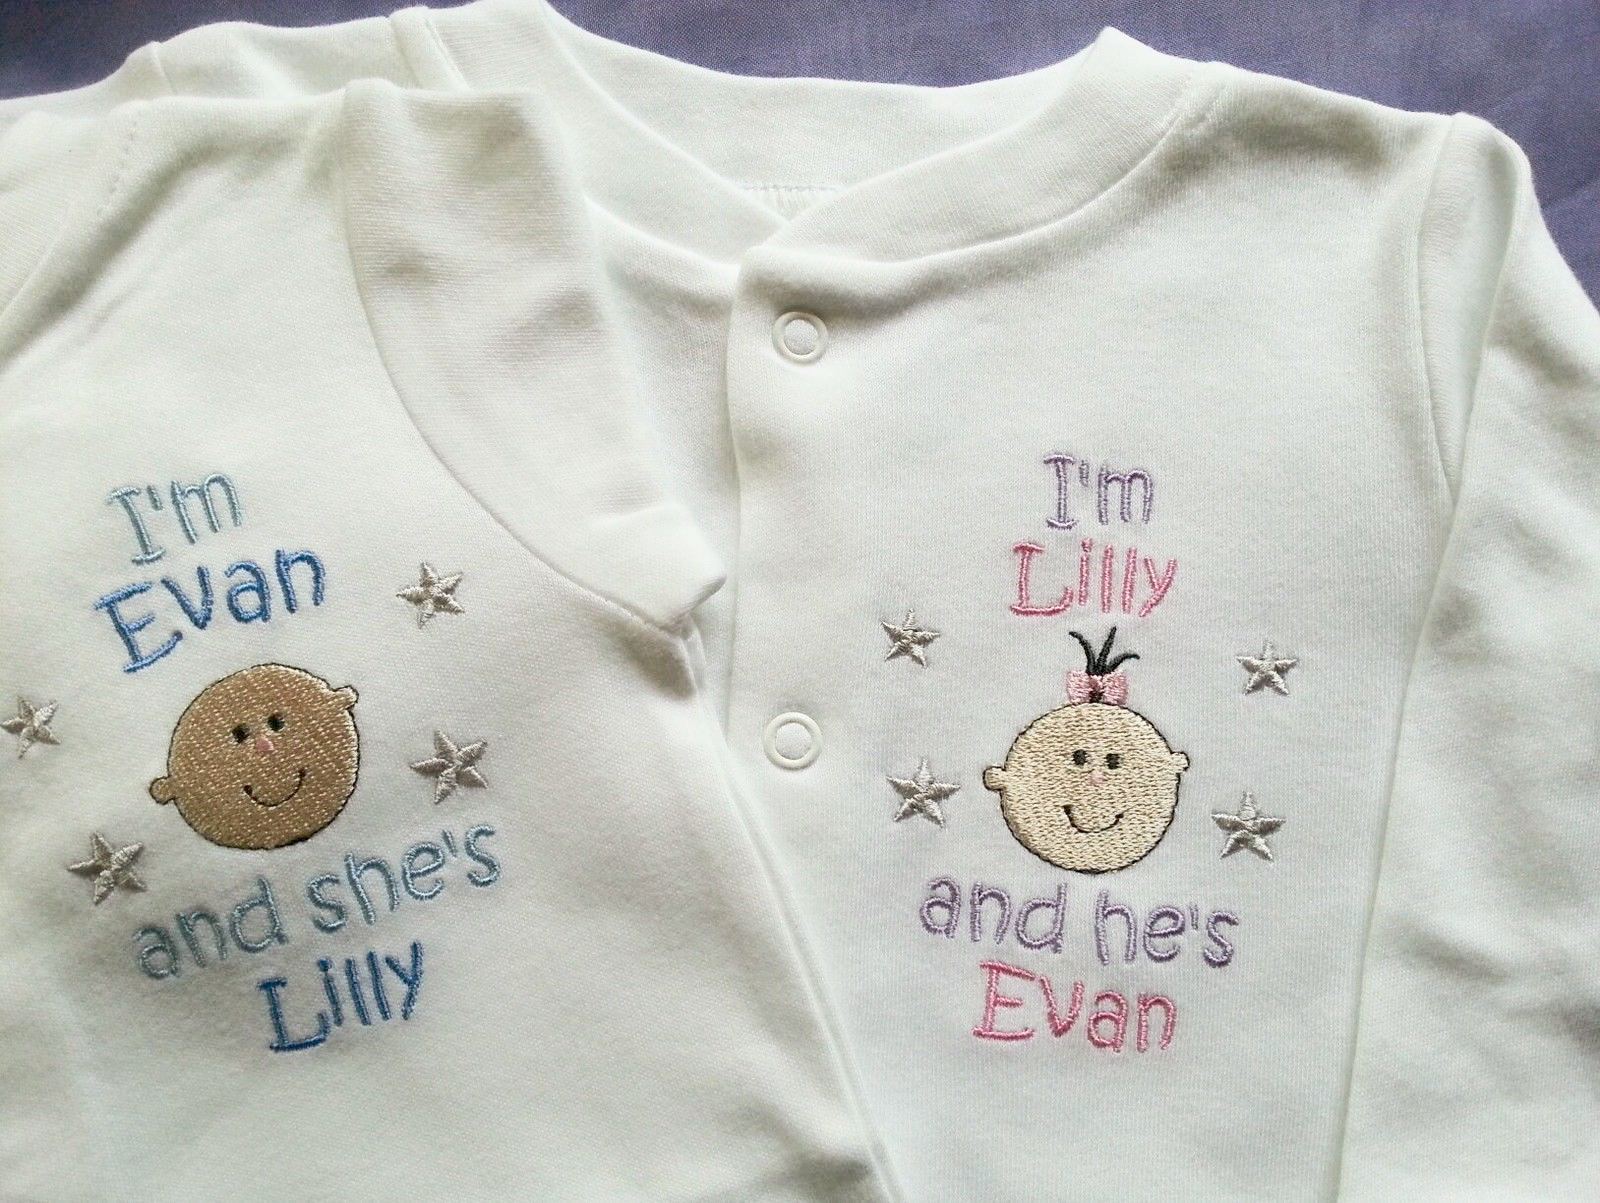 0-3 Months 2 Pack Personalised England Embroidered Baby All in One Sleepsuit